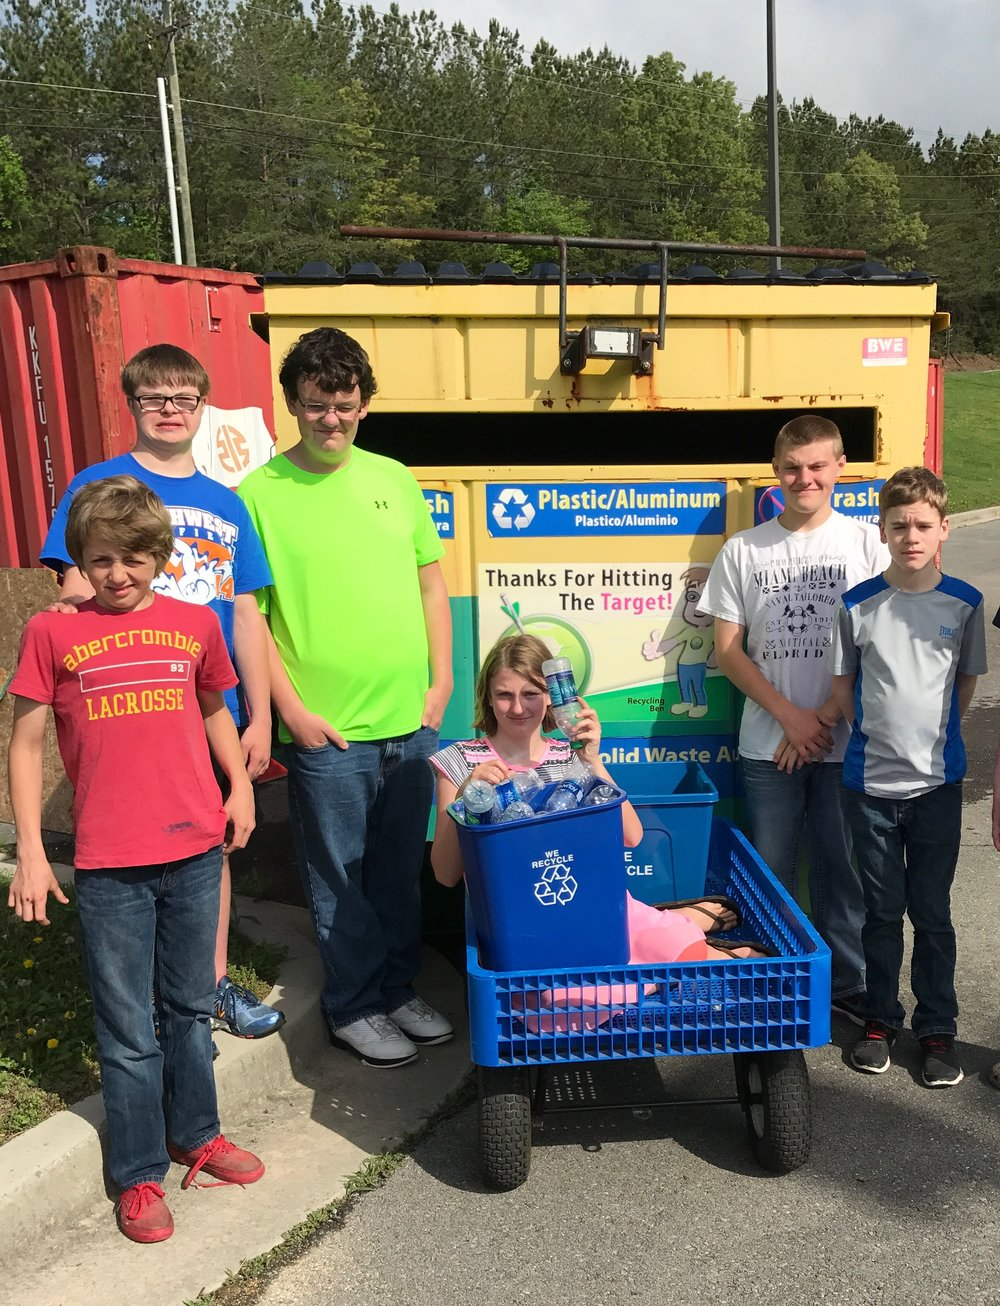 New Hope Middle placed first in the middle school category in this year's recycling contest hosted by Target Recycling. Pictured from Left to Right in front of the plastic bottle and aluminum can recycling container are students Ea-on Payne, Tate Marti, Zachary Amos, Brenna Ledlow, Jarod Holcomb, and Daniel Brackett who are members of the Recycling Crew.